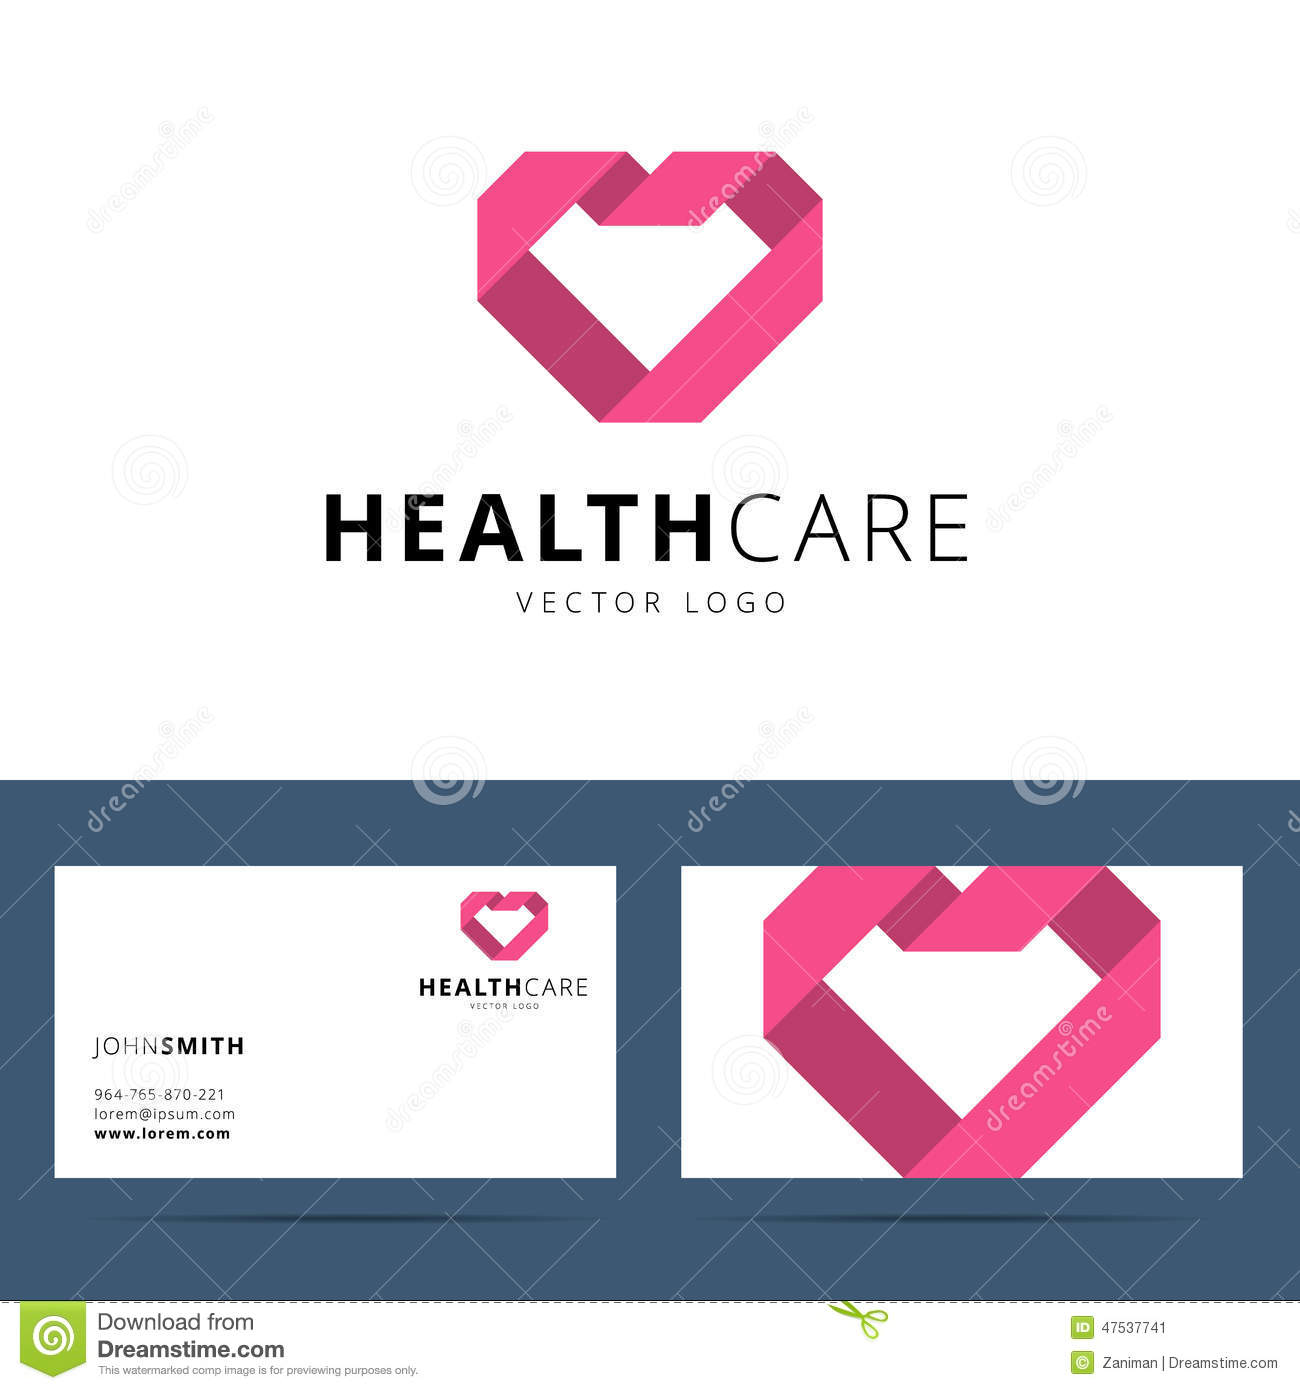 health-care-vector-logo-template-business-card-heart-shape-sign-illustration-47537741.jpg